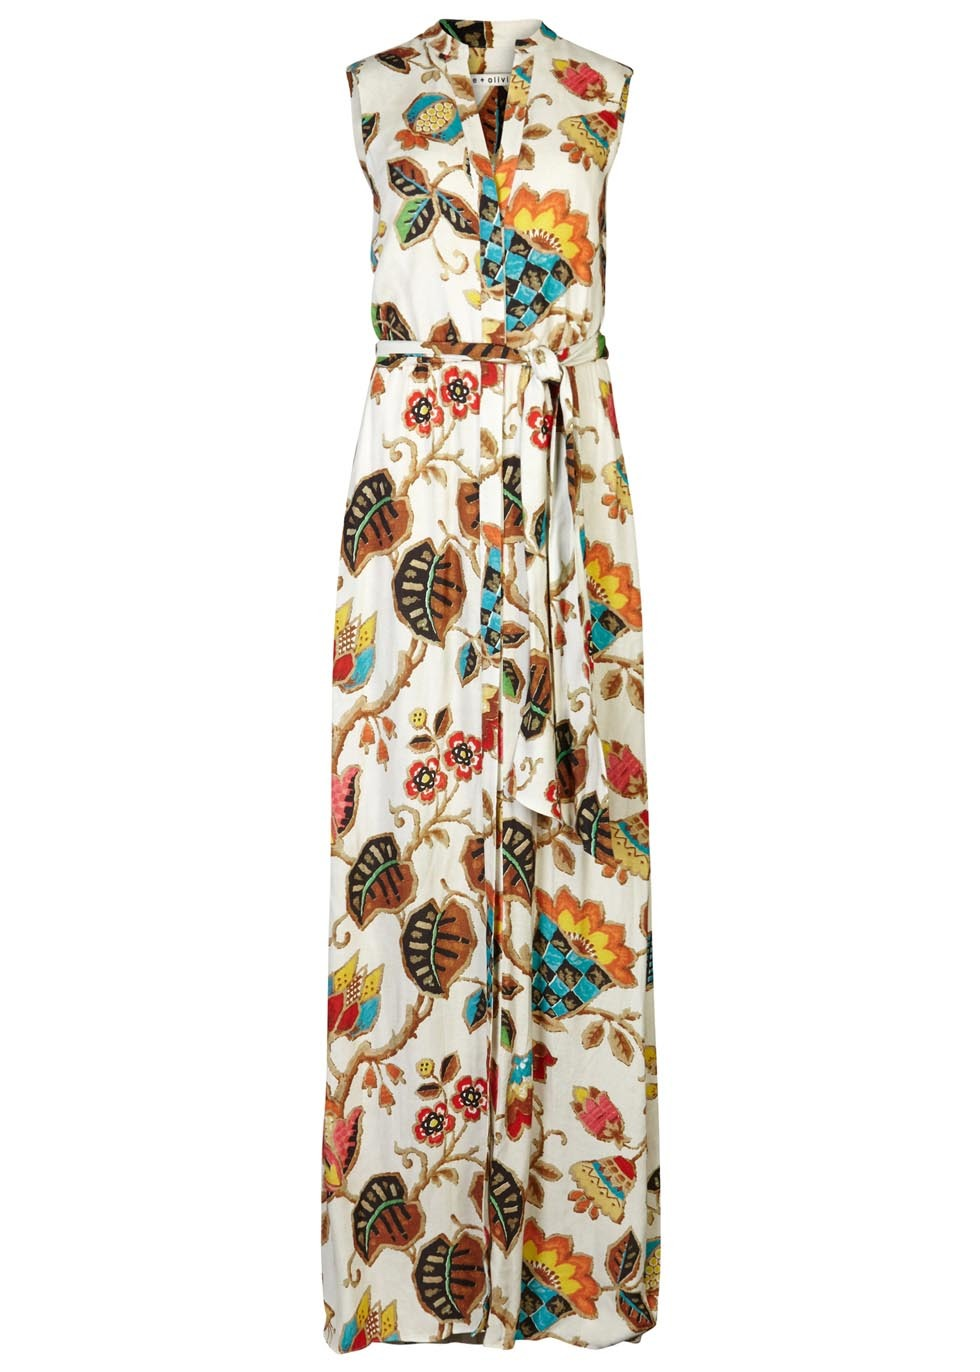 Marianna Printed Crepe Maxi Dress - fit: loose; sleeve style: sleeveless; style: maxi dress; waist detail: belted waist/tie at waist/drawstring; predominant colour: ivory/cream; secondary colour: bright orange; occasions: casual; length: floor length; neckline: collarstand & mandarin with v-neck; fibres: viscose/rayon - 100%; sleeve length: sleeveless; pattern type: fabric; pattern size: big & busy; pattern: florals; texture group: woven light midweight; multicoloured: multicoloured; season: s/s 2016; wardrobe: highlight